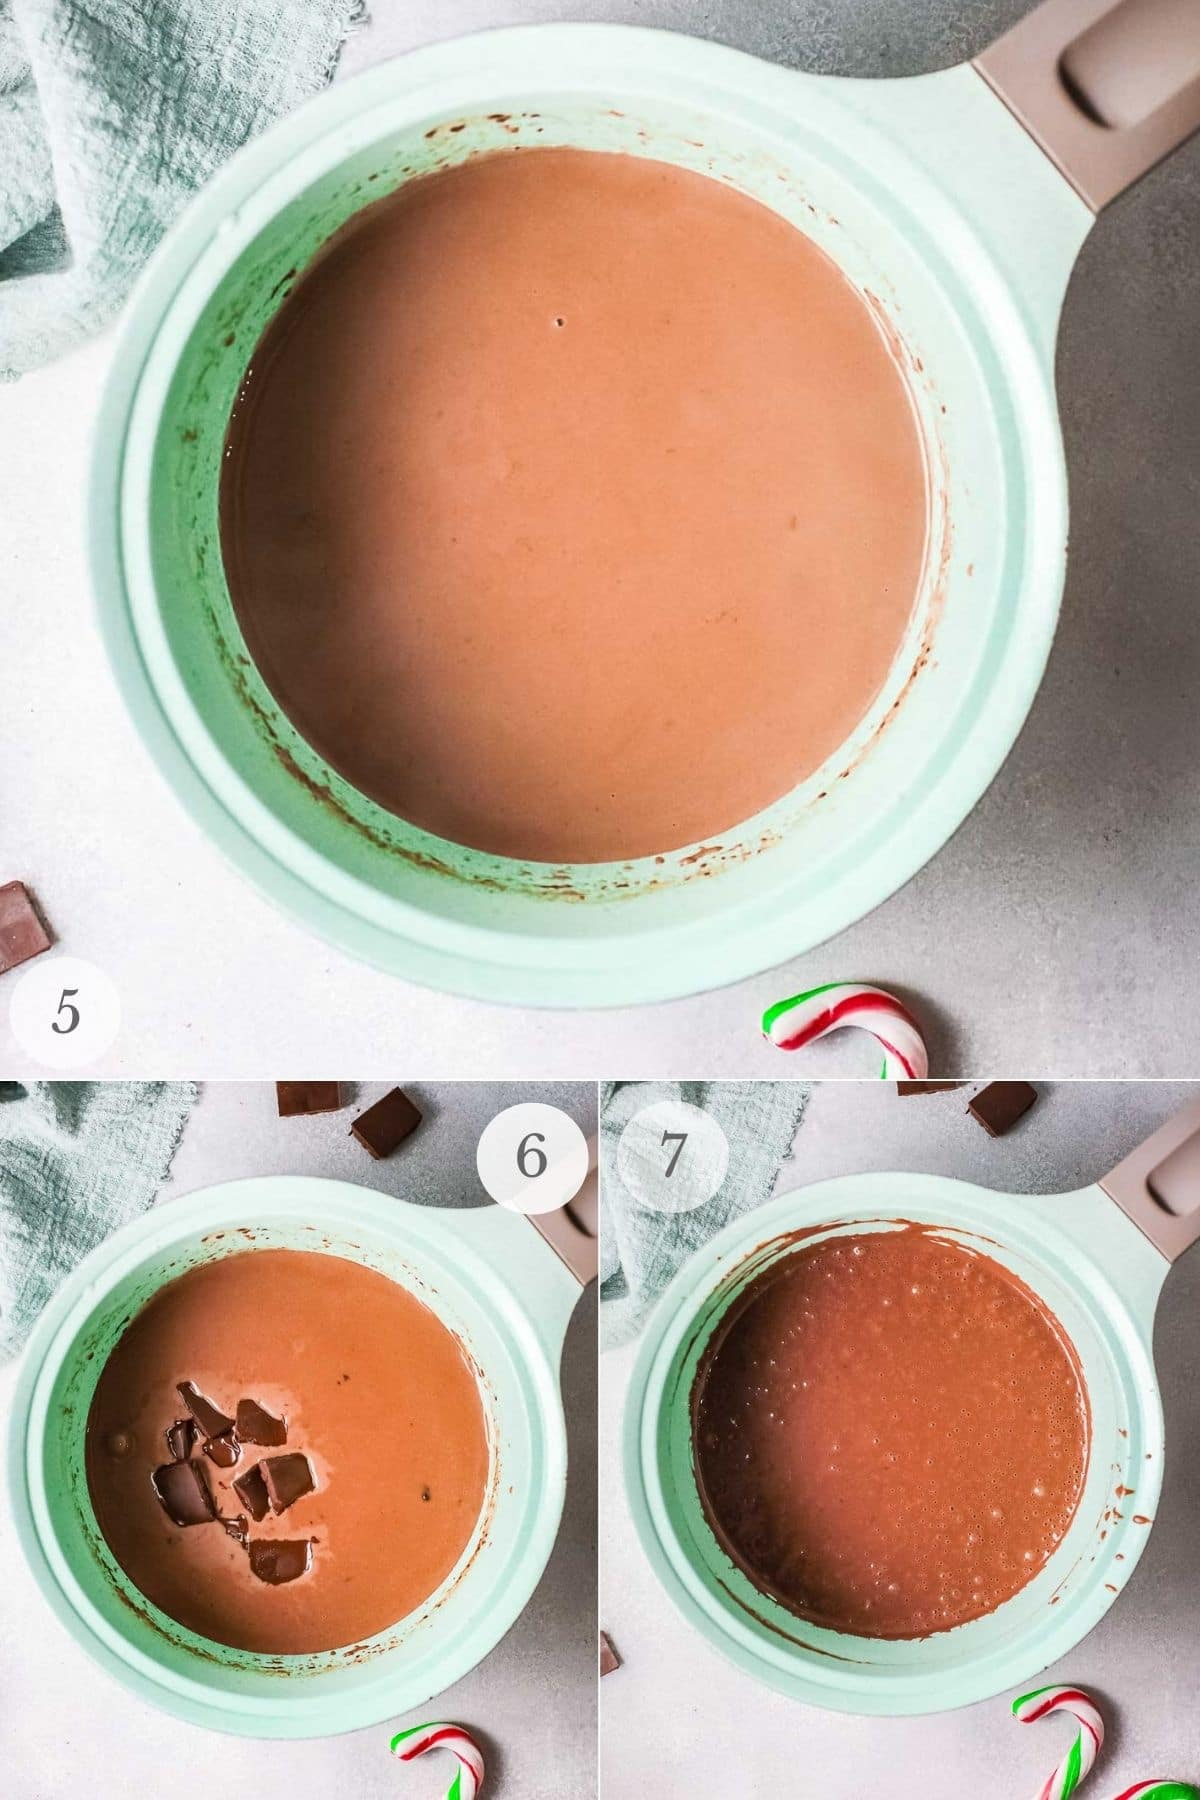 peppermint hot chocolate recipe steps 5-7